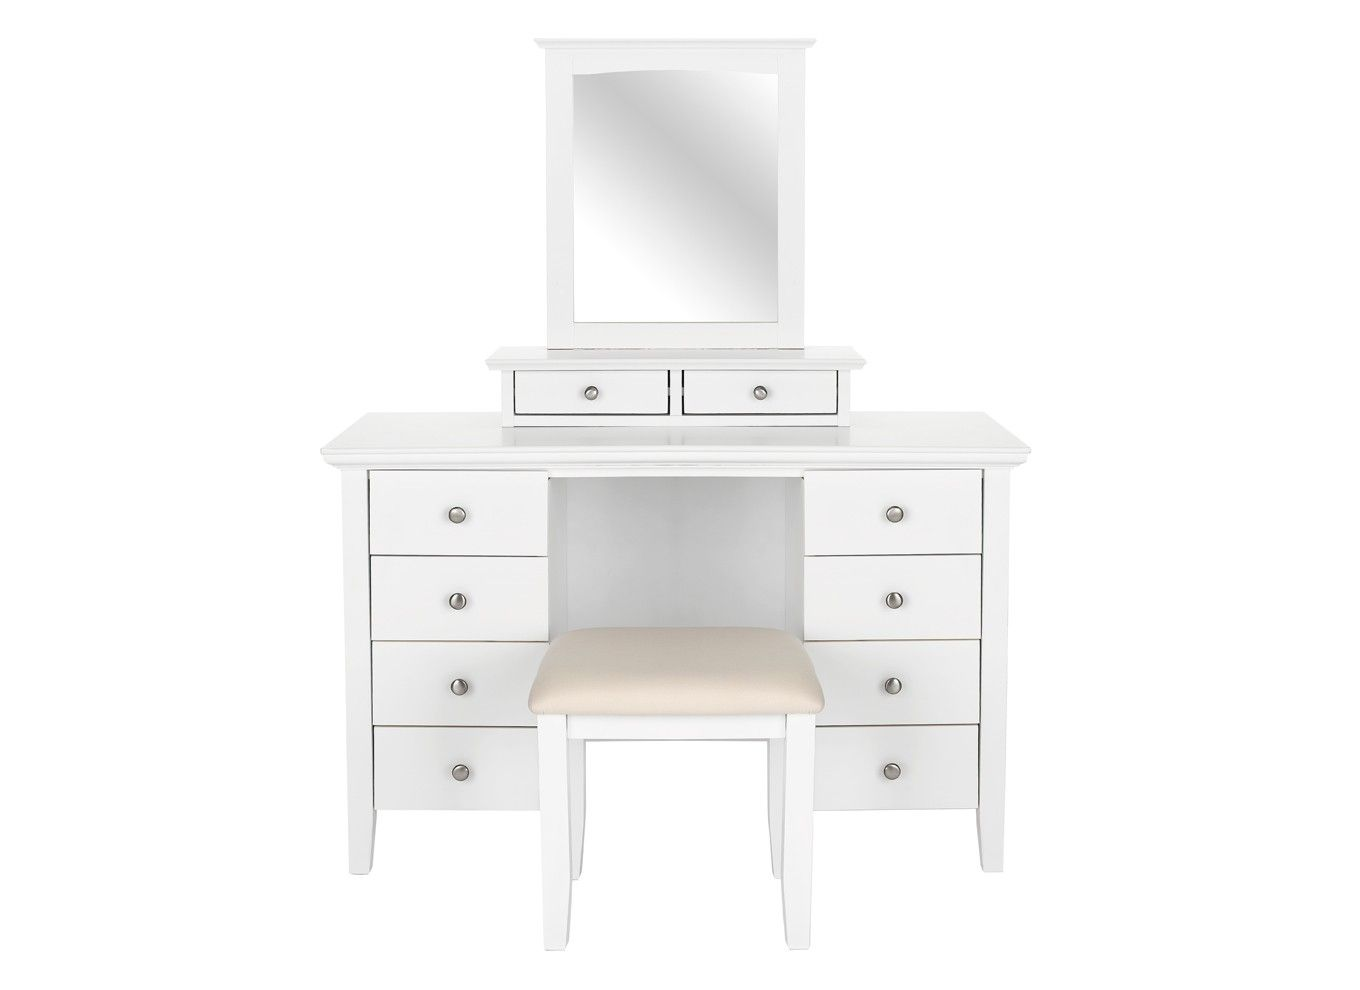 Bedroom furniture dressing table stools - Dressing Table Mirror With Lights Ikea Images